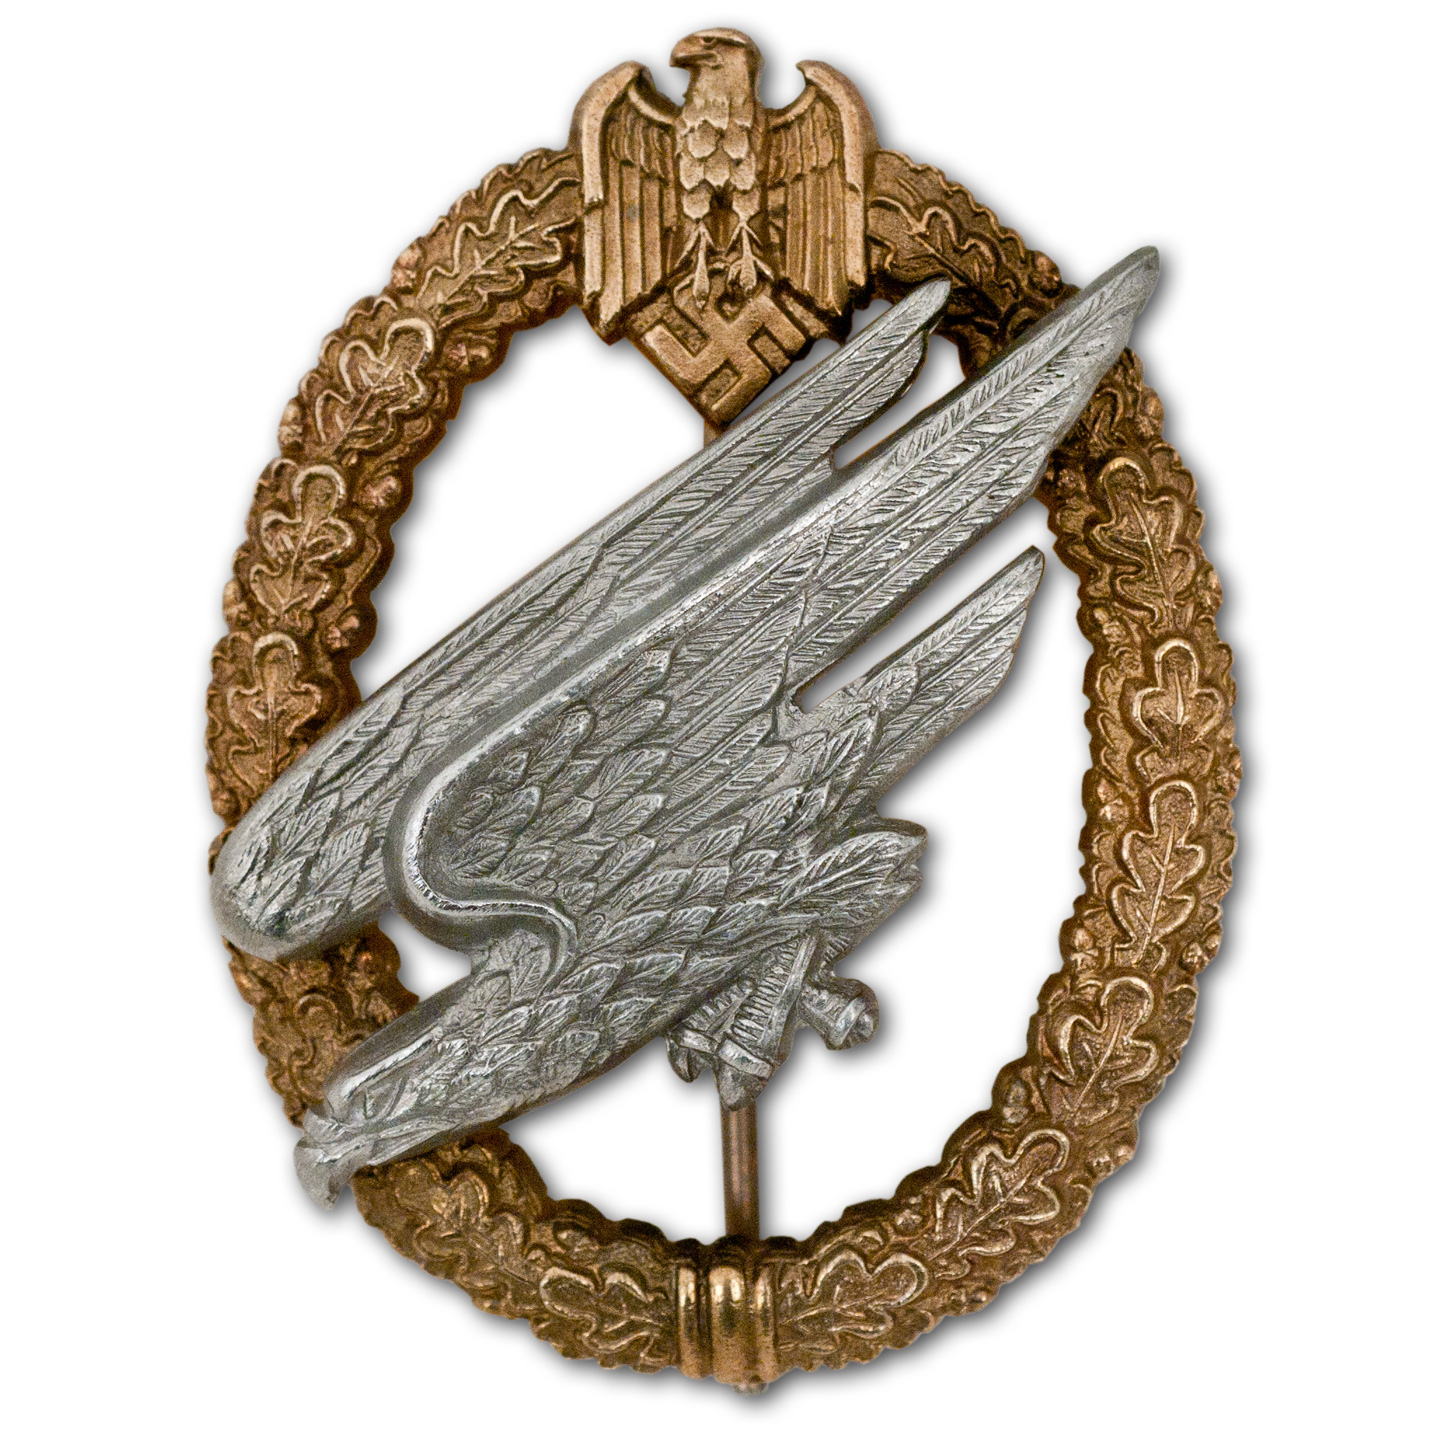 Sniper Badge 1st Class WW2 Repro German Patch Insignia Uniform Army Eagle New